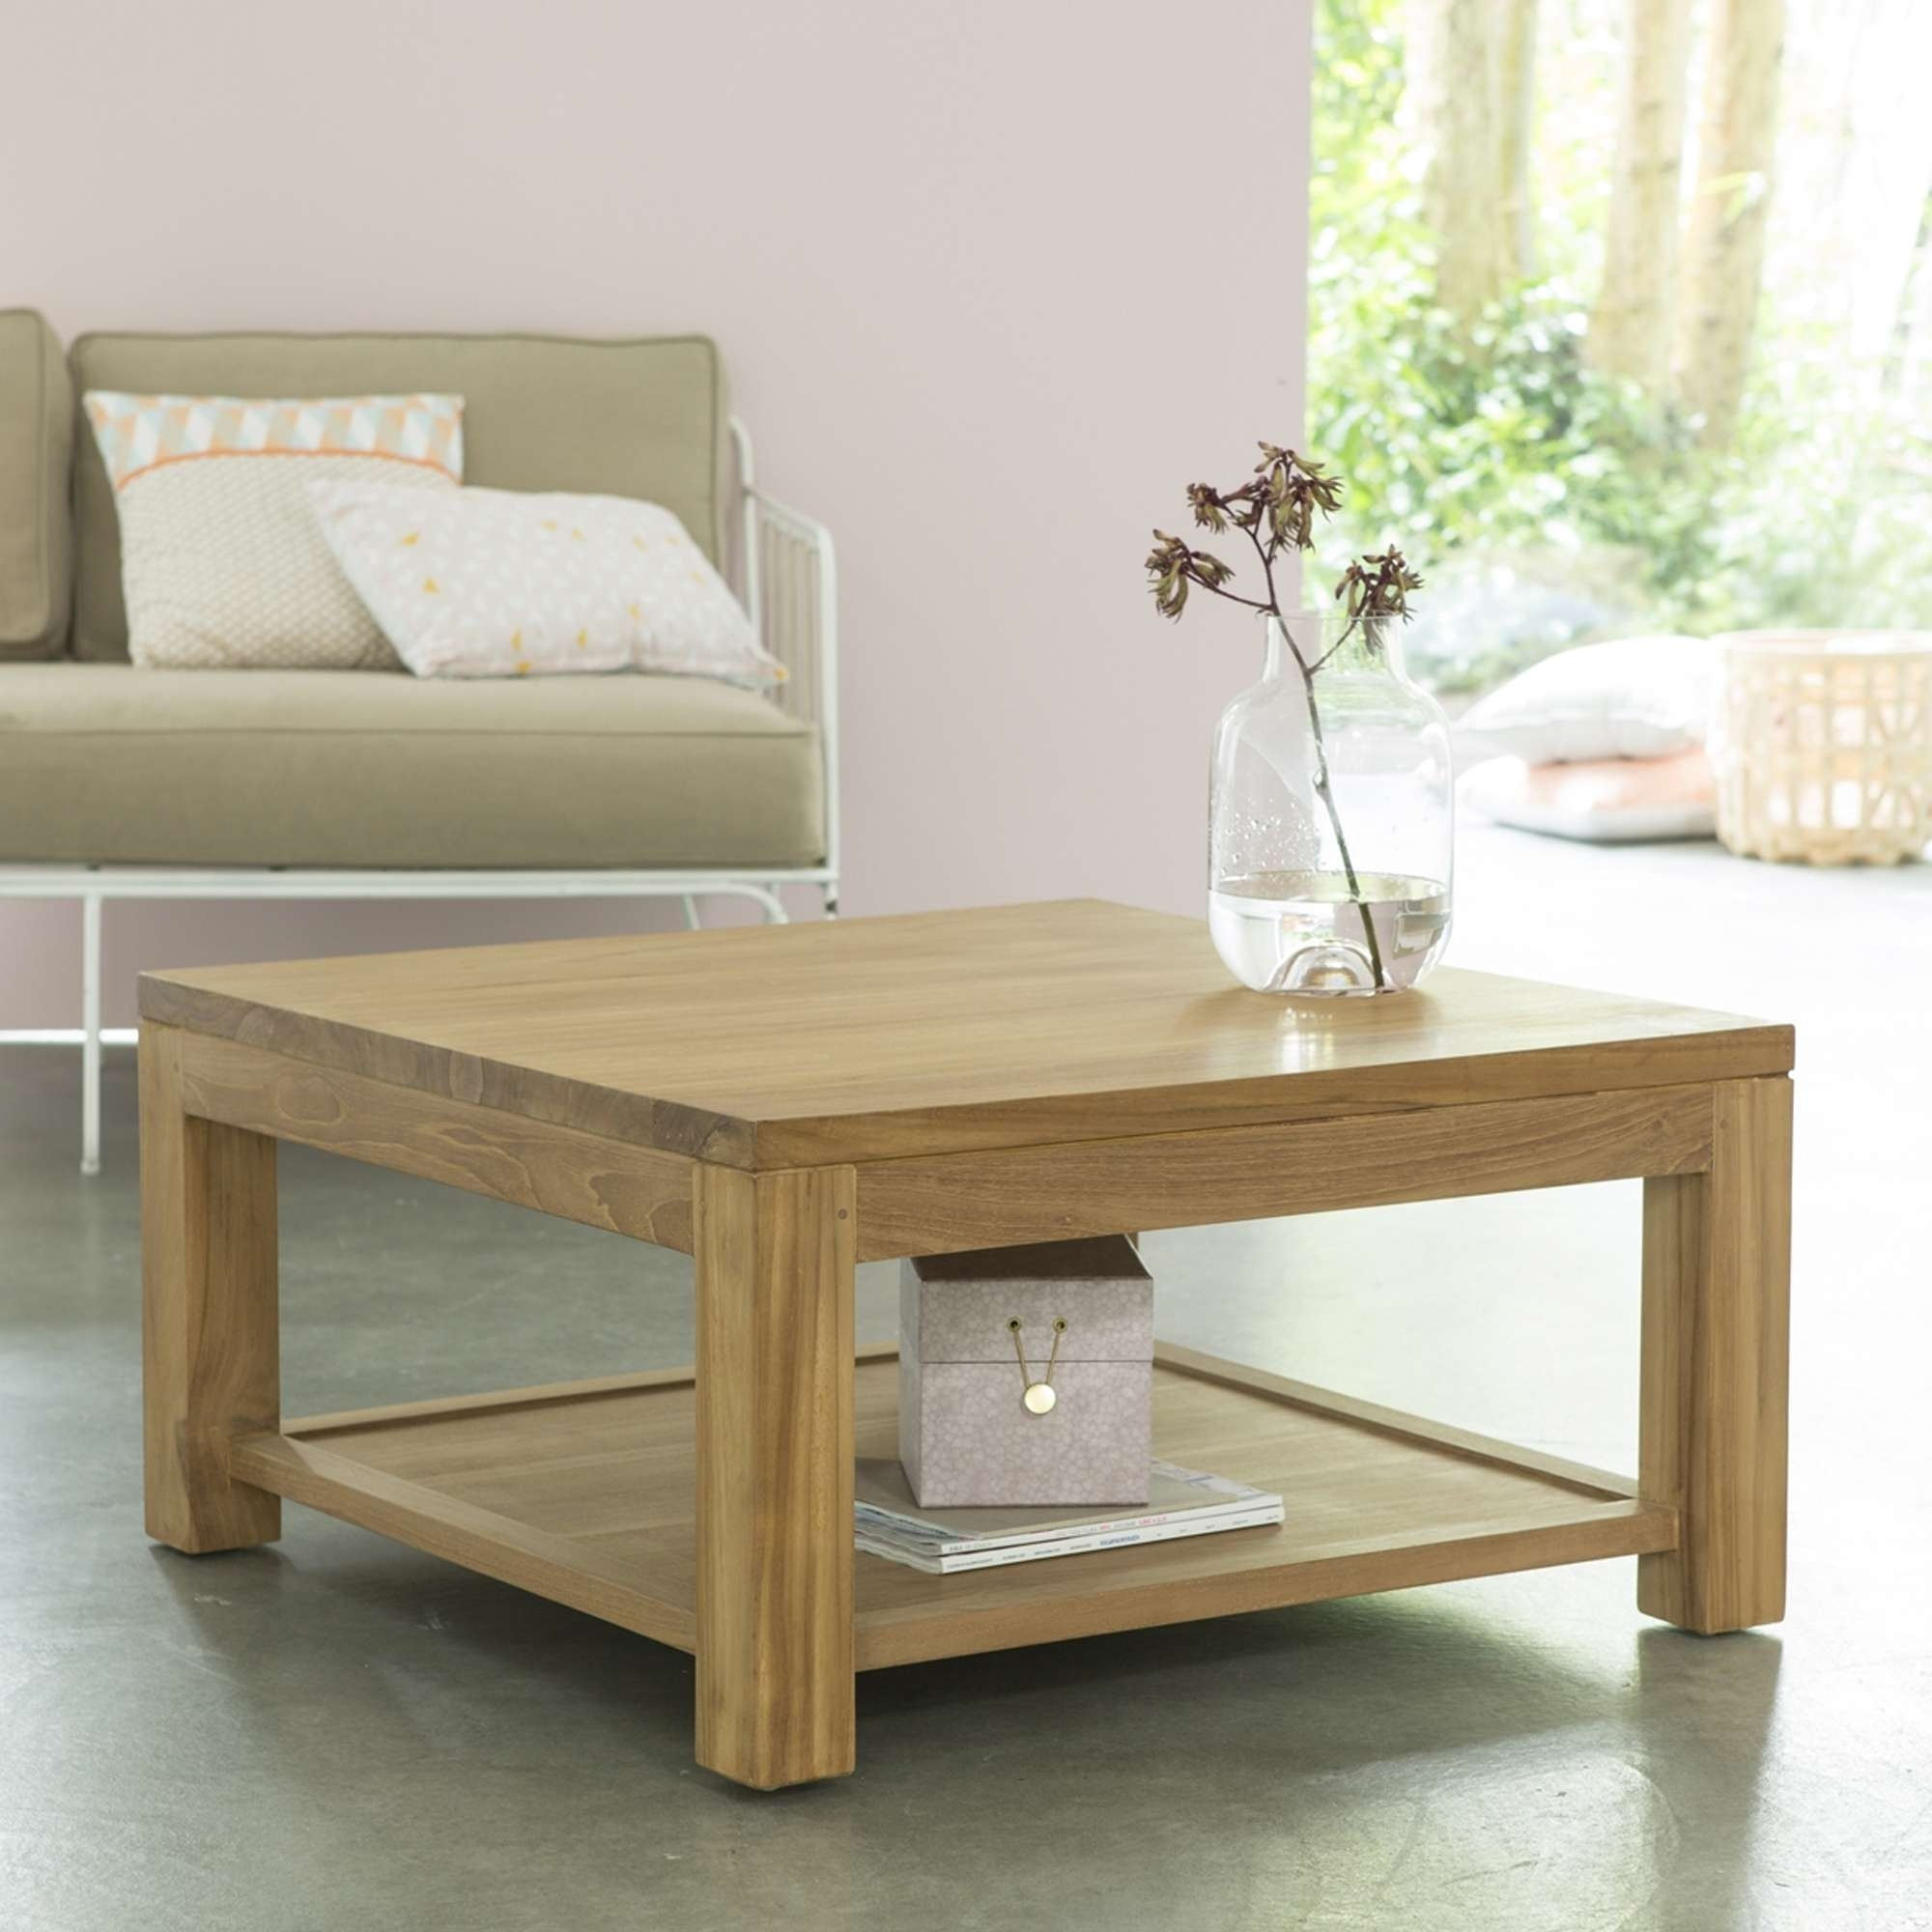 Well Liked Quirky Coffee Tables In Large Tufted Ottoman Tags : Stylish Quirky Coffee Tables Exciting (View 4 of 20)